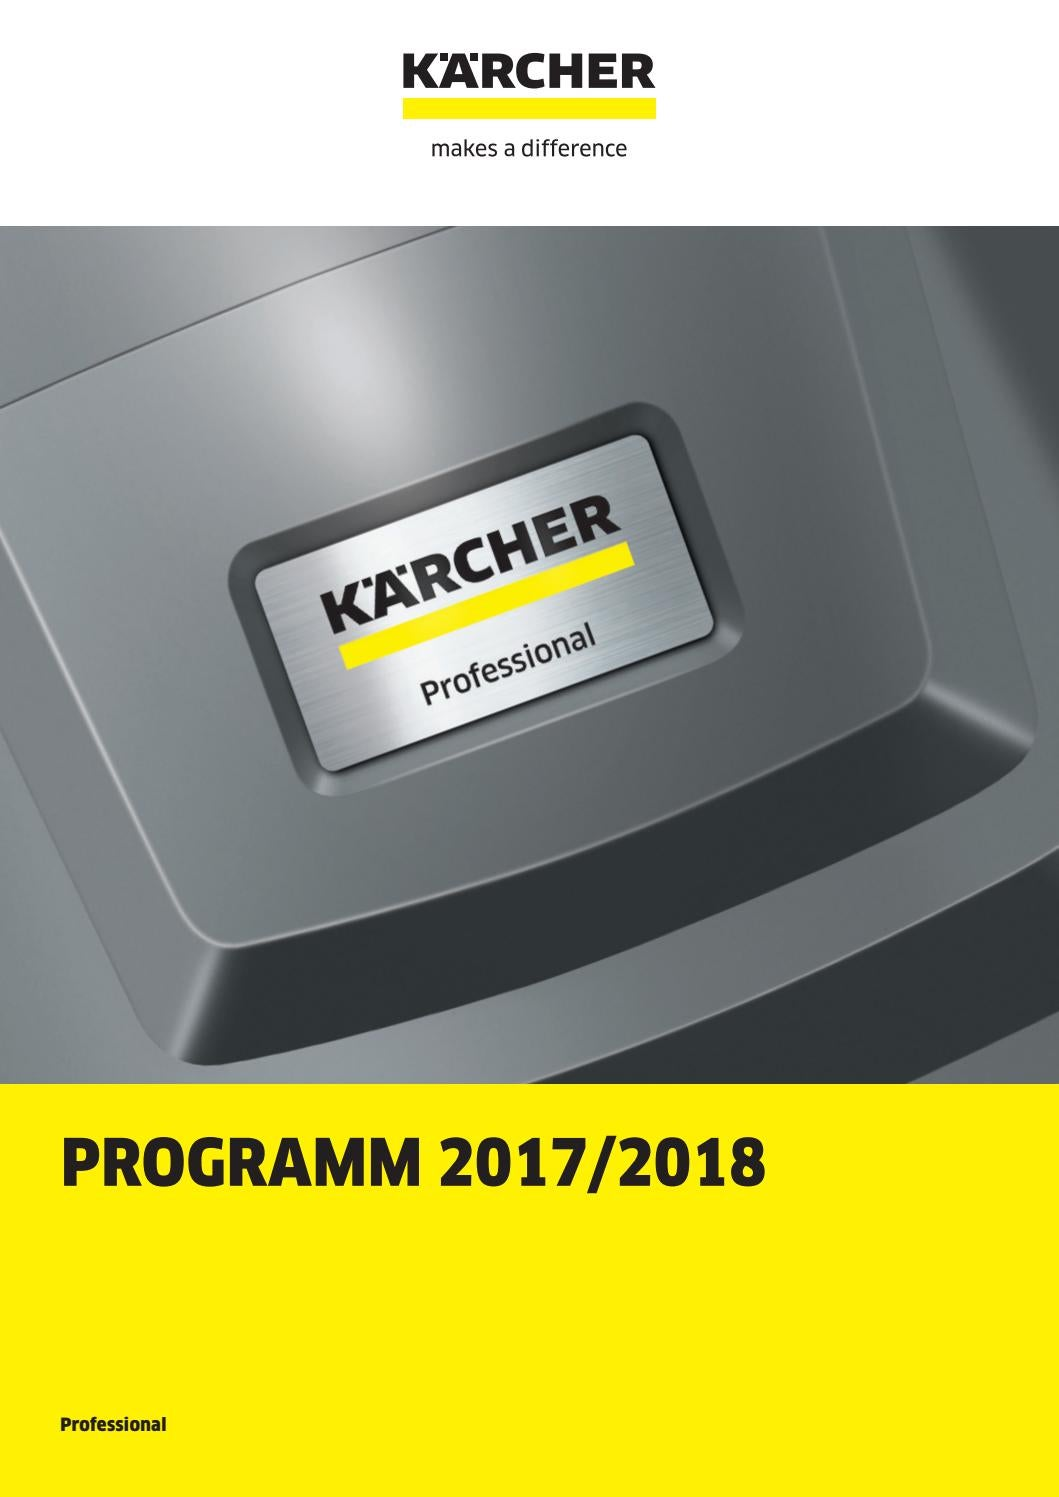 Kärcher prof 2017 de by technomag-ch - issuu